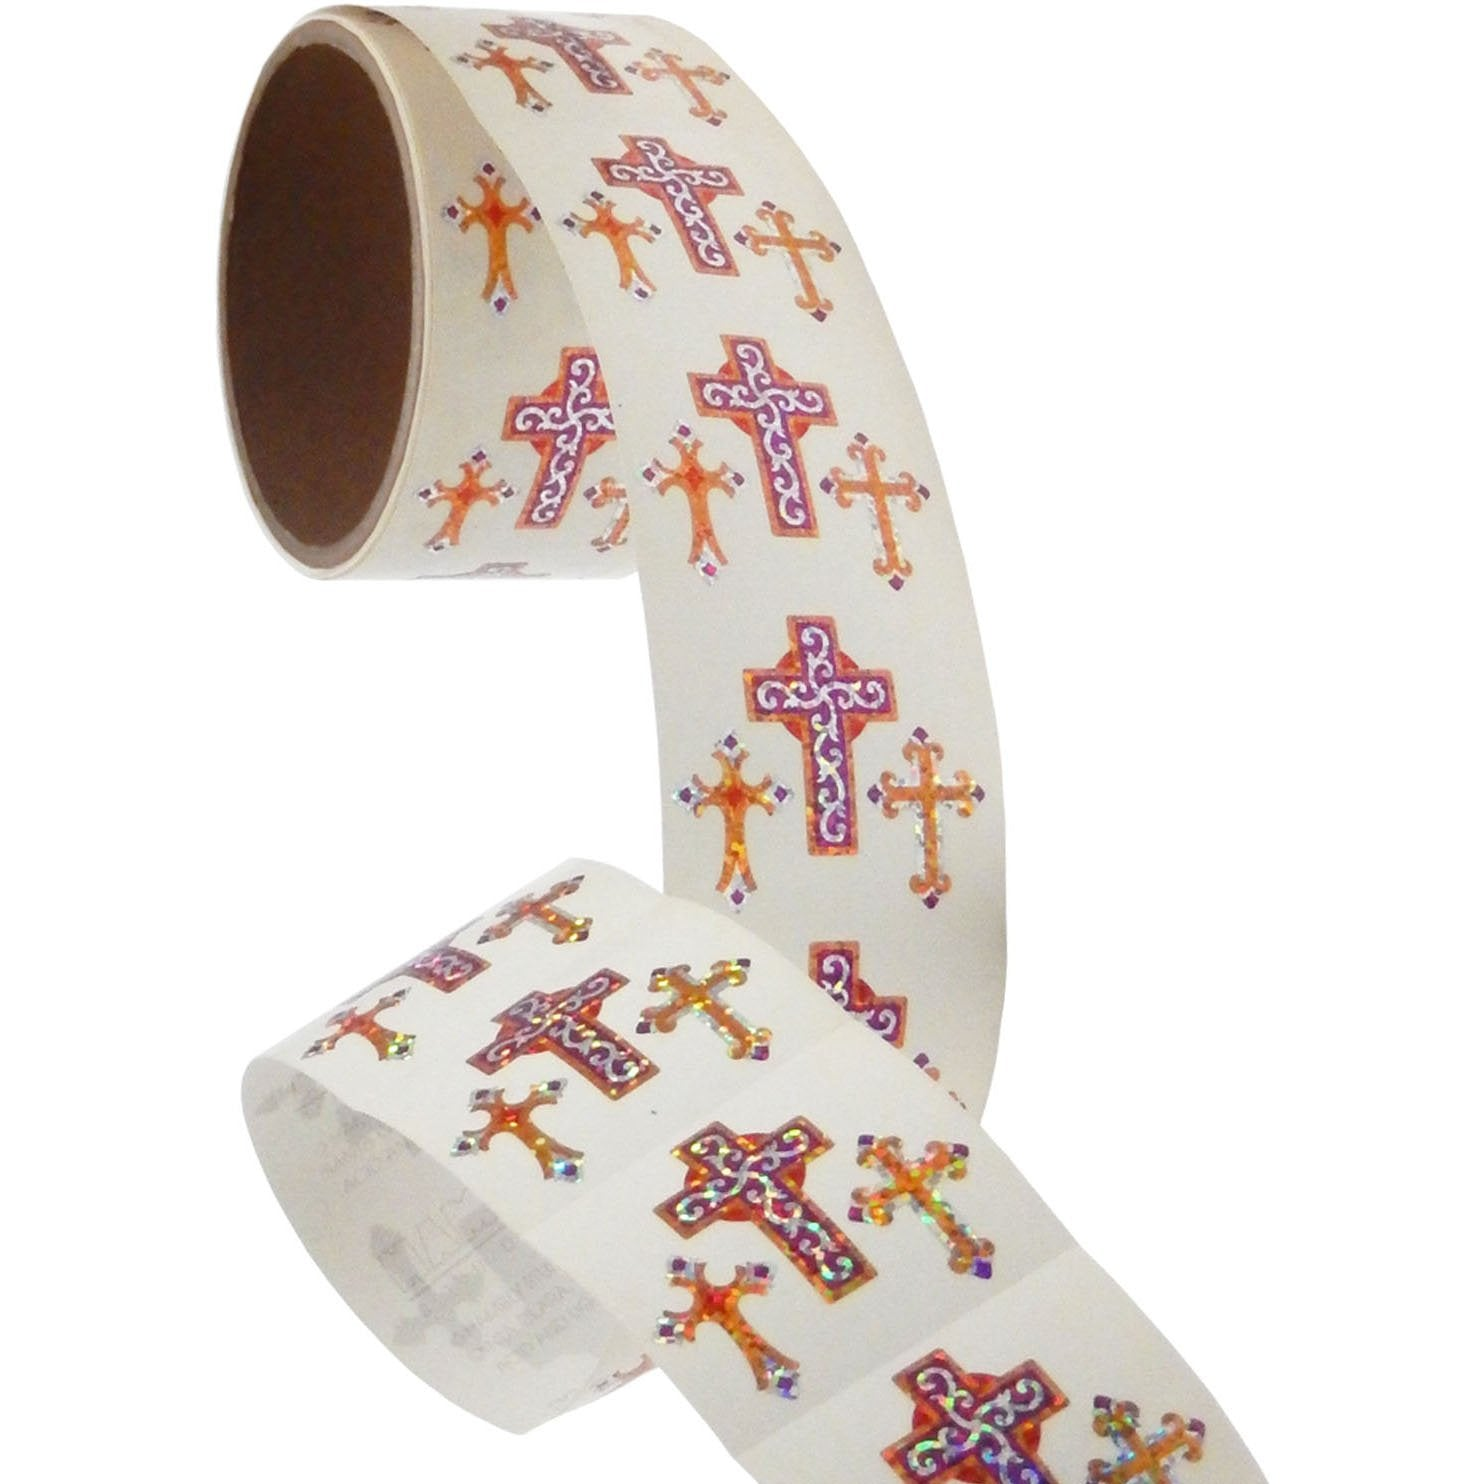 Jillson & Roberts Bulk Roll Prismatic Stickers, Crosses (100 Repeats) - Present Paper